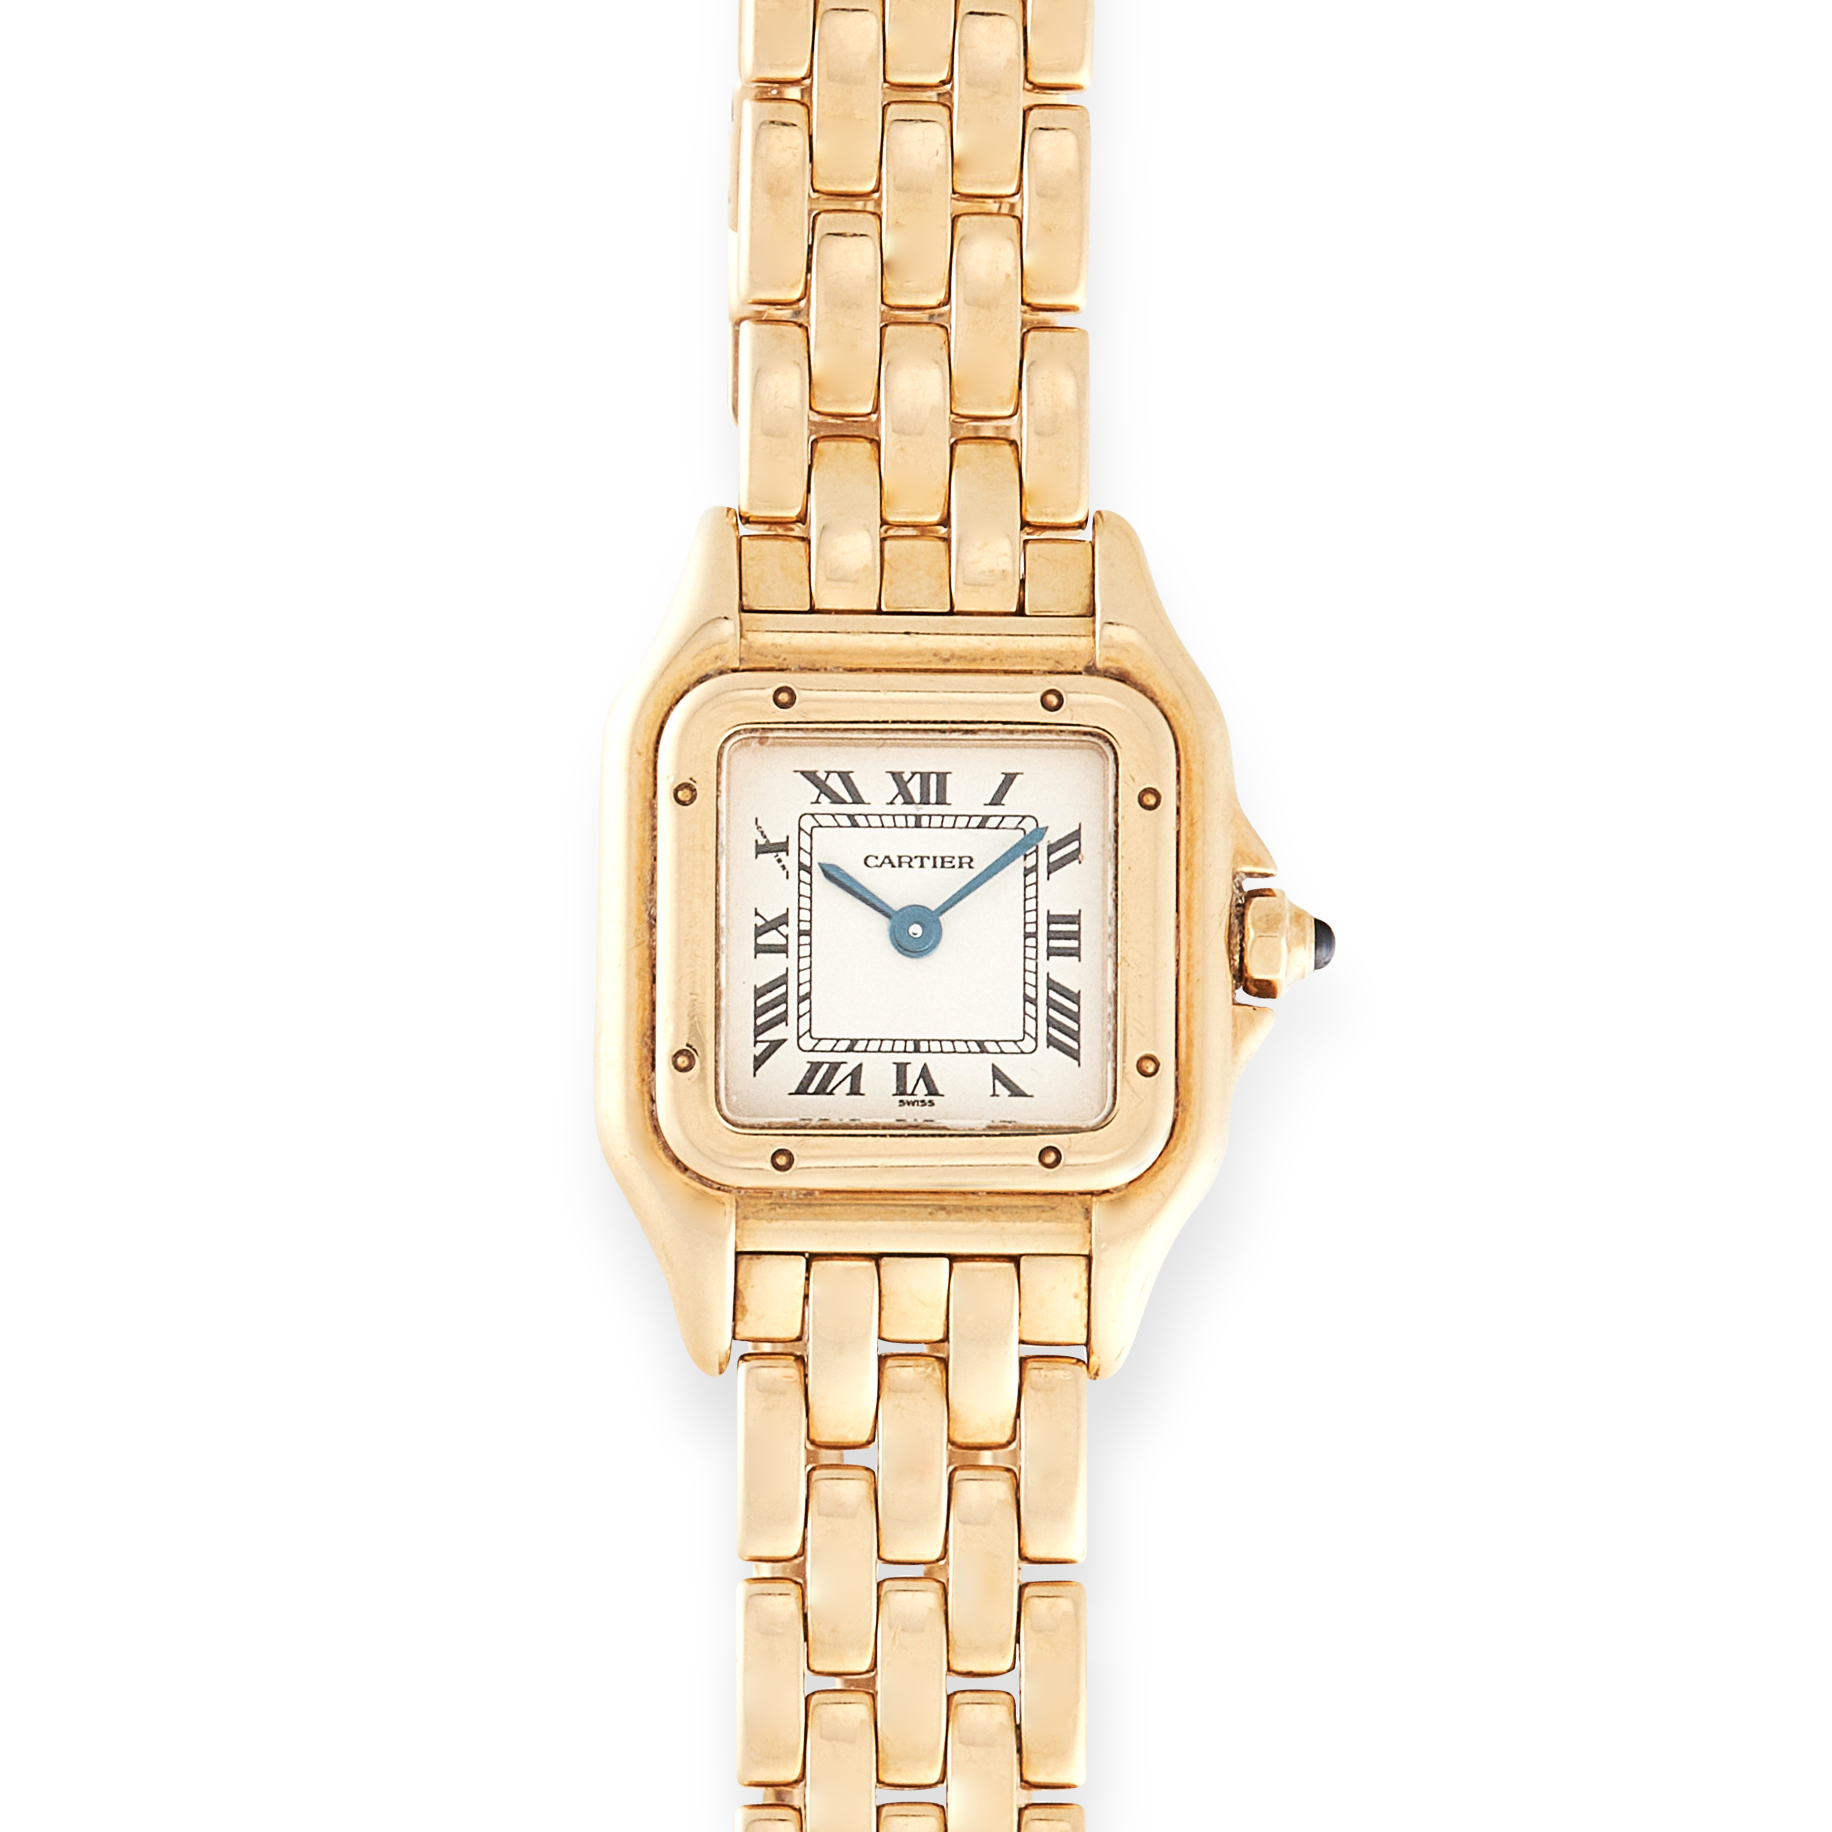 A LADIES PANTHERE DE CARTIER WRIST WATCH, CARTIER in 18ct yellow gold, the face with Roman numerals,